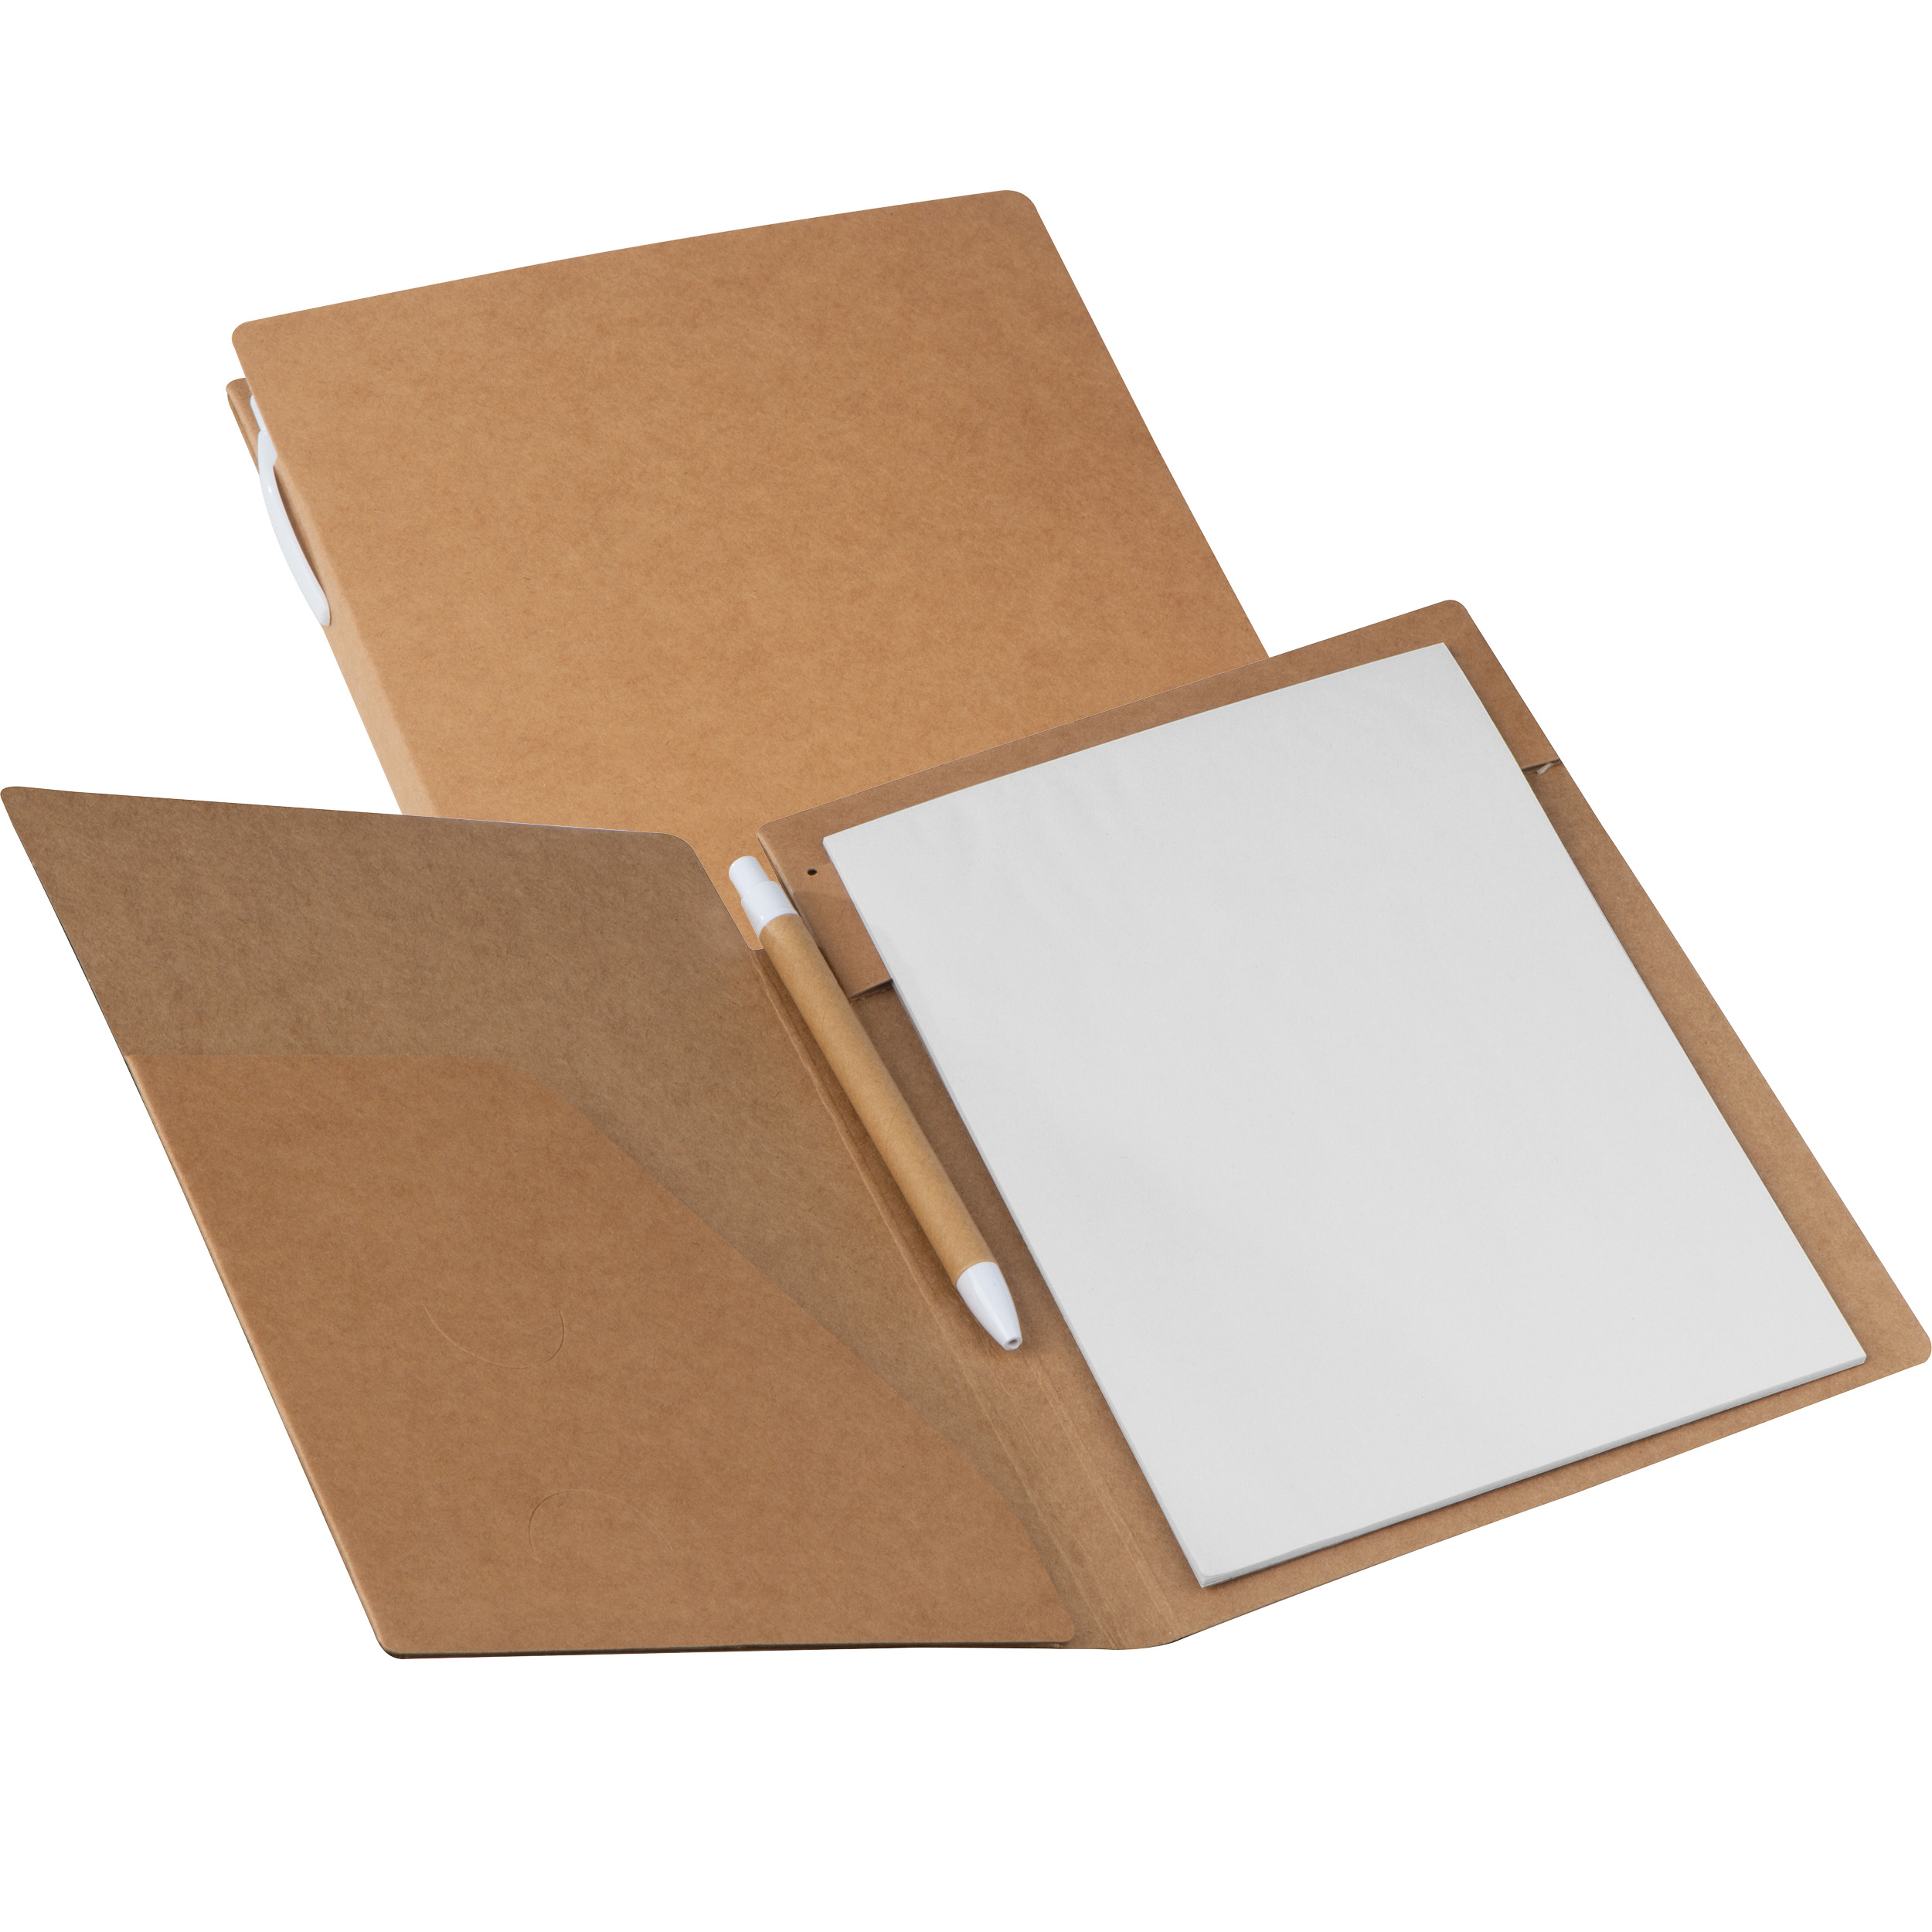 Cardboard writing case